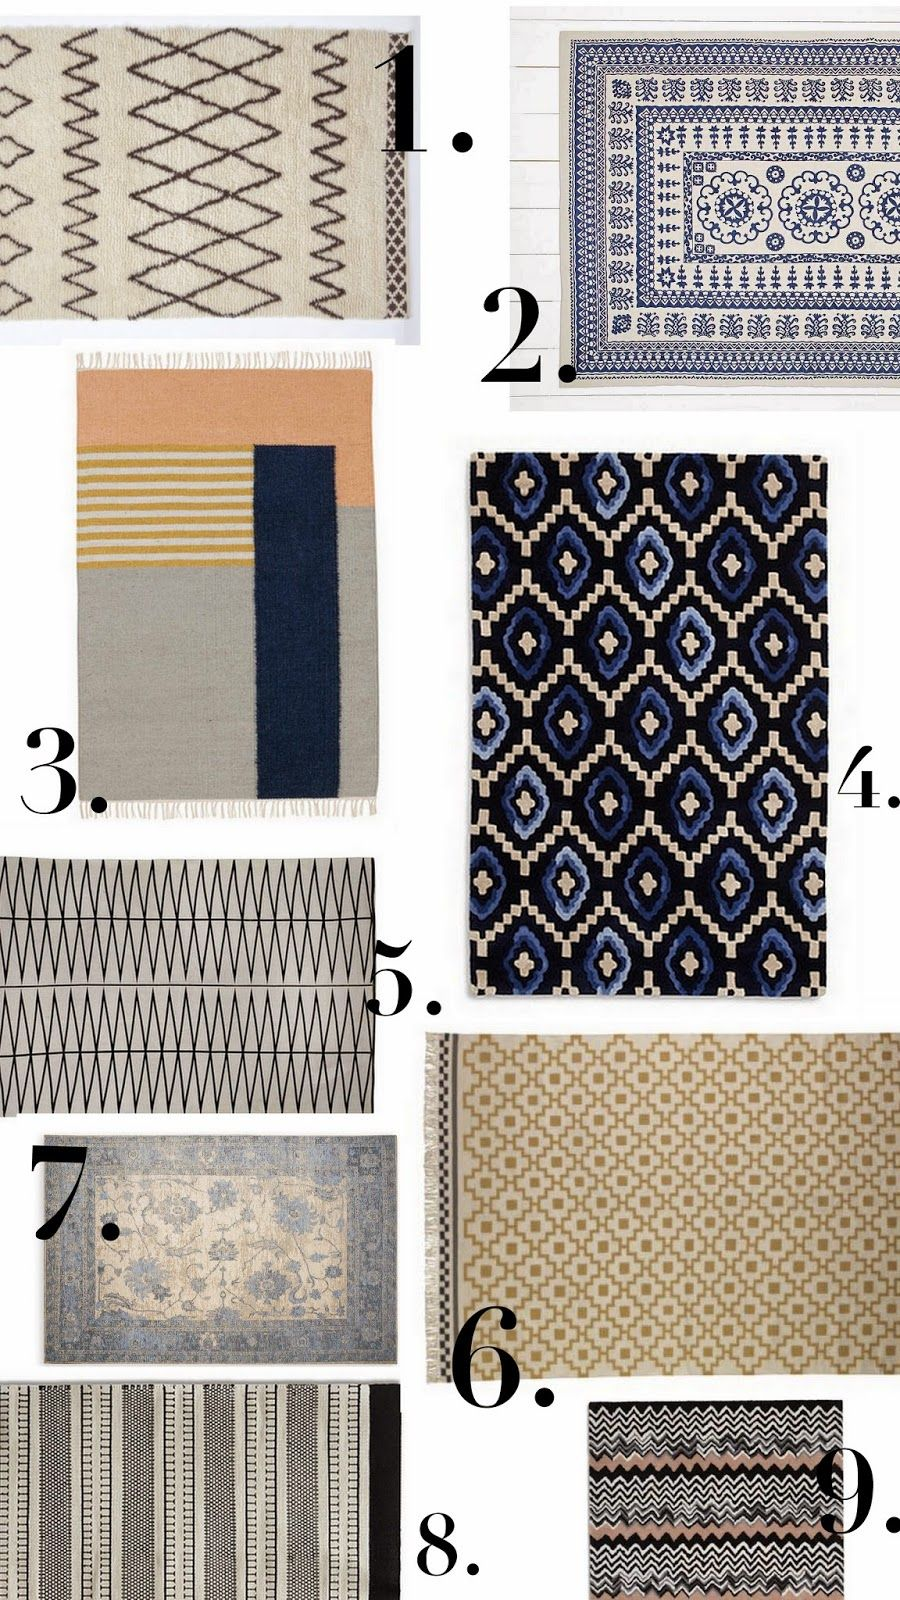 The Frugality: Affordable interiors: Rugs